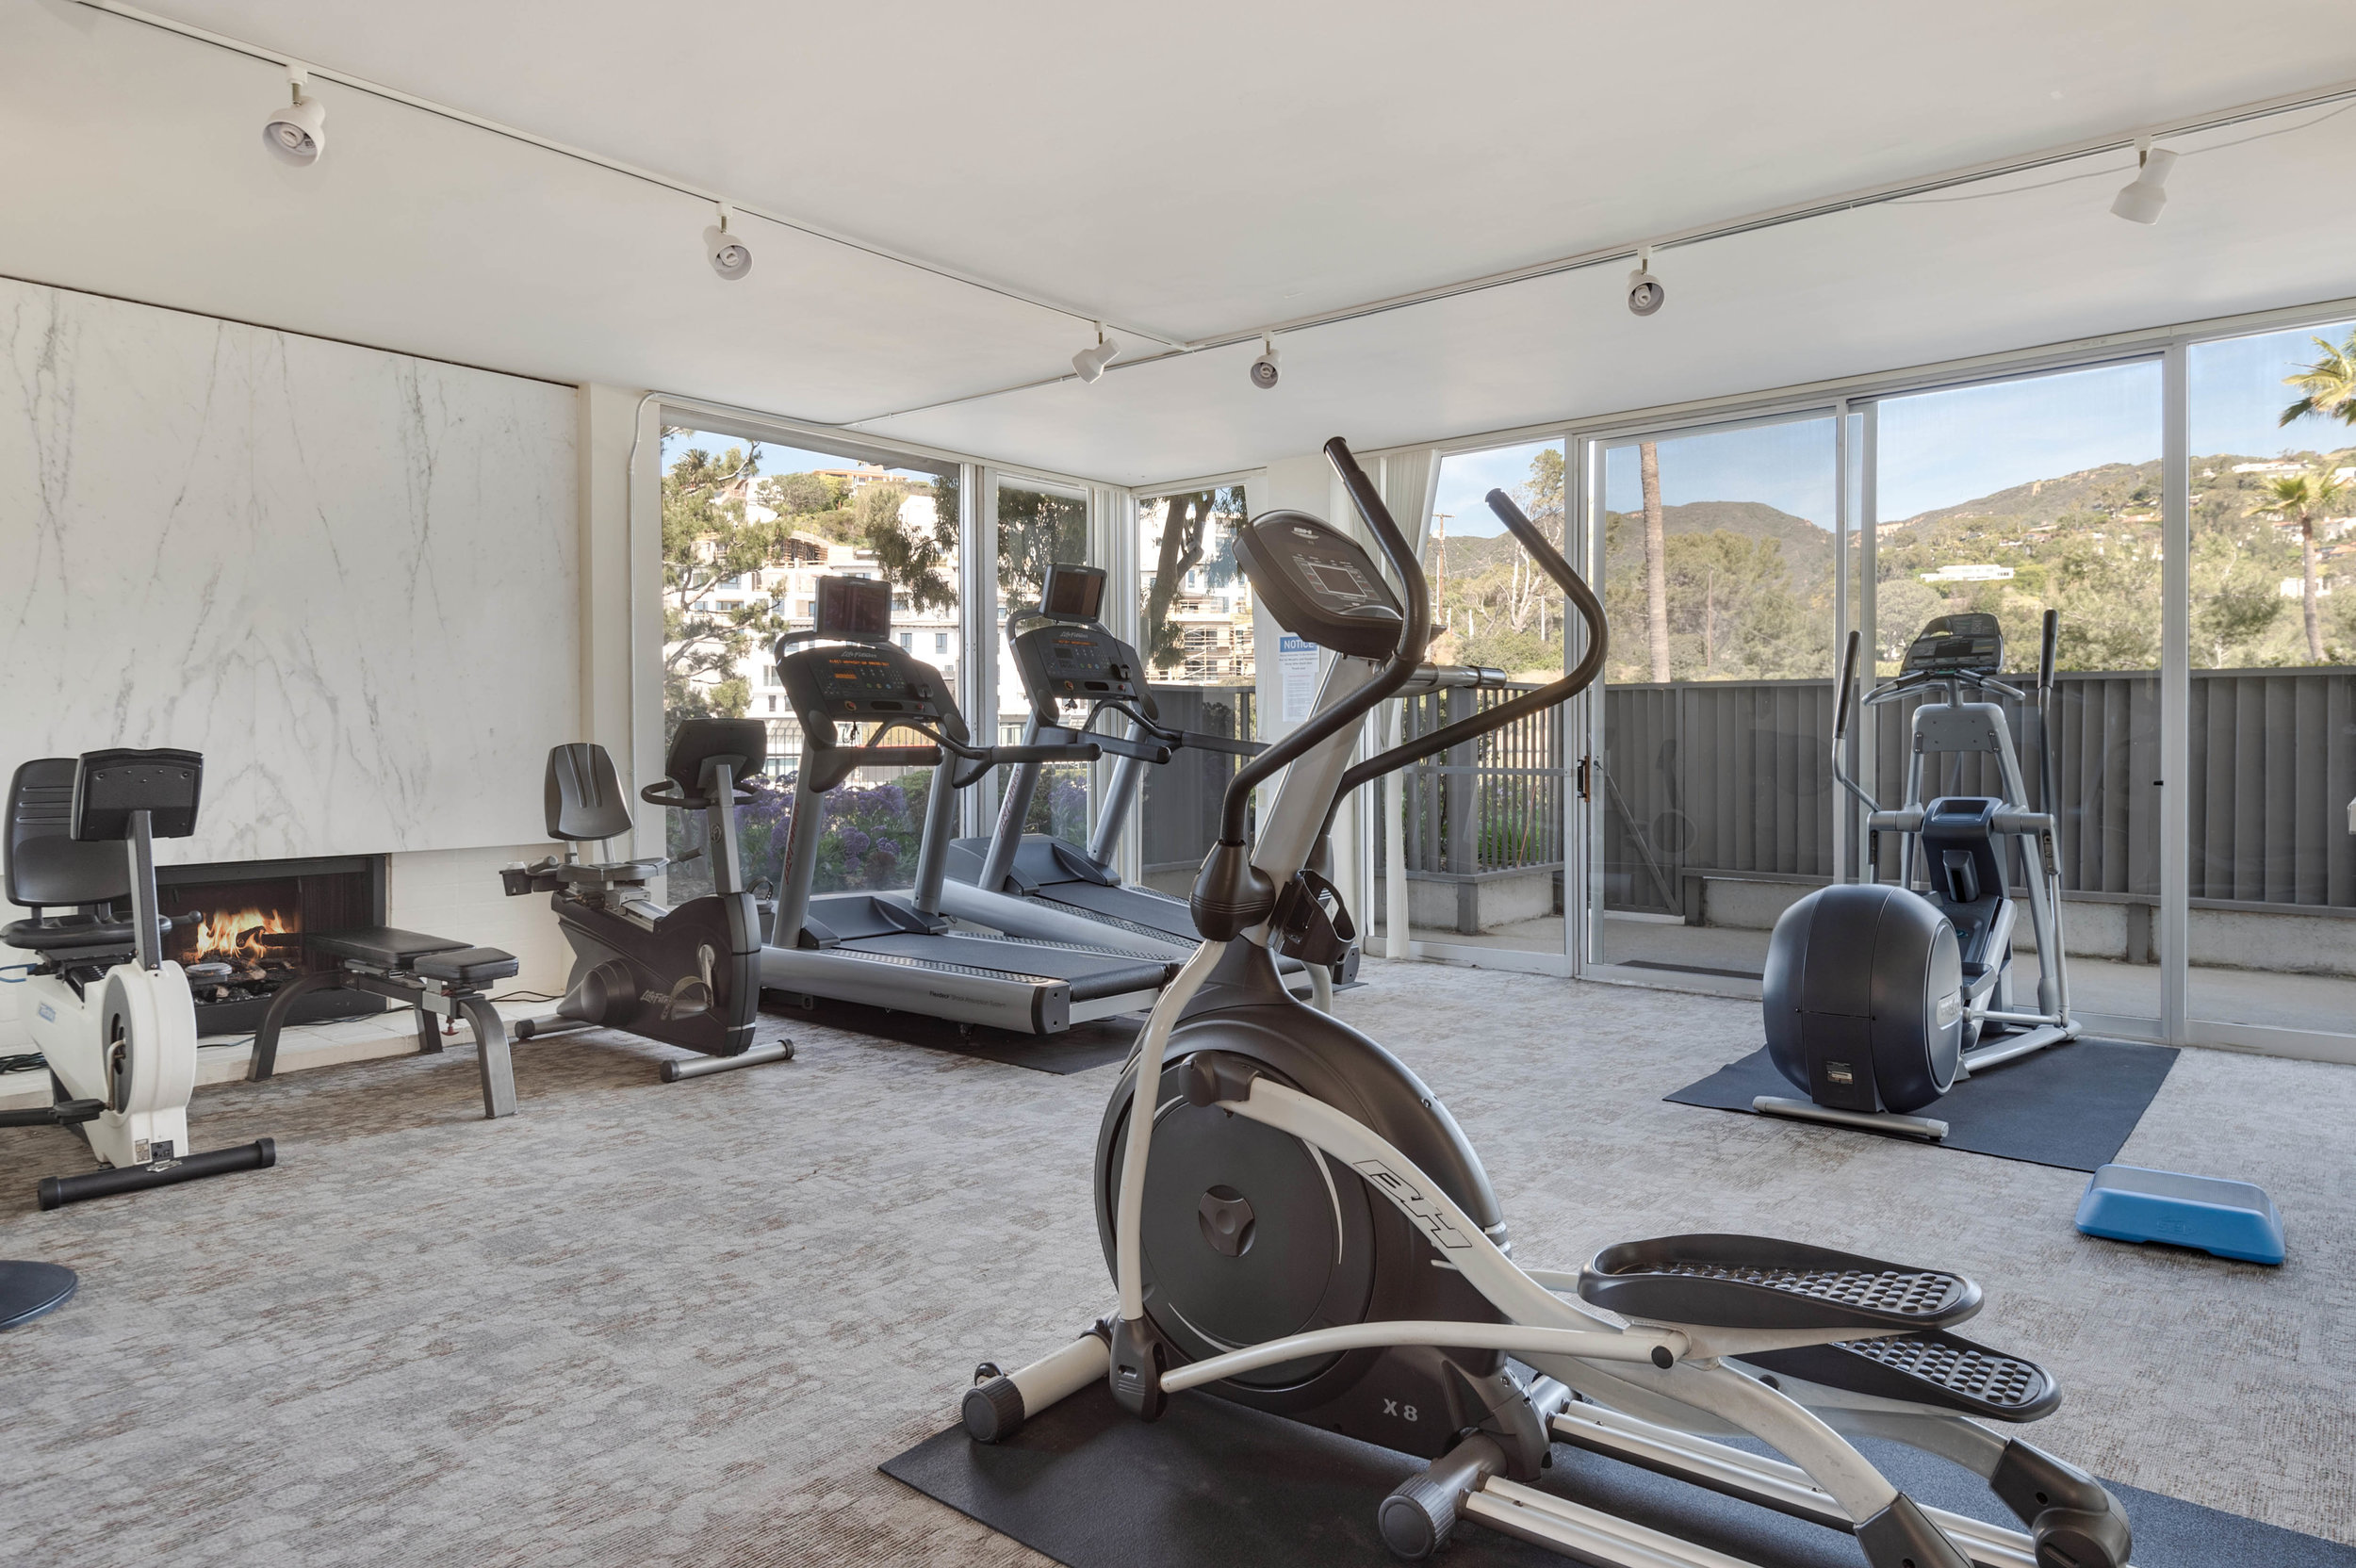 009 Gym 17350 West Sunset Boulevard For Sale Lease The Malibu Life Team Luxury Real Estate.jpg